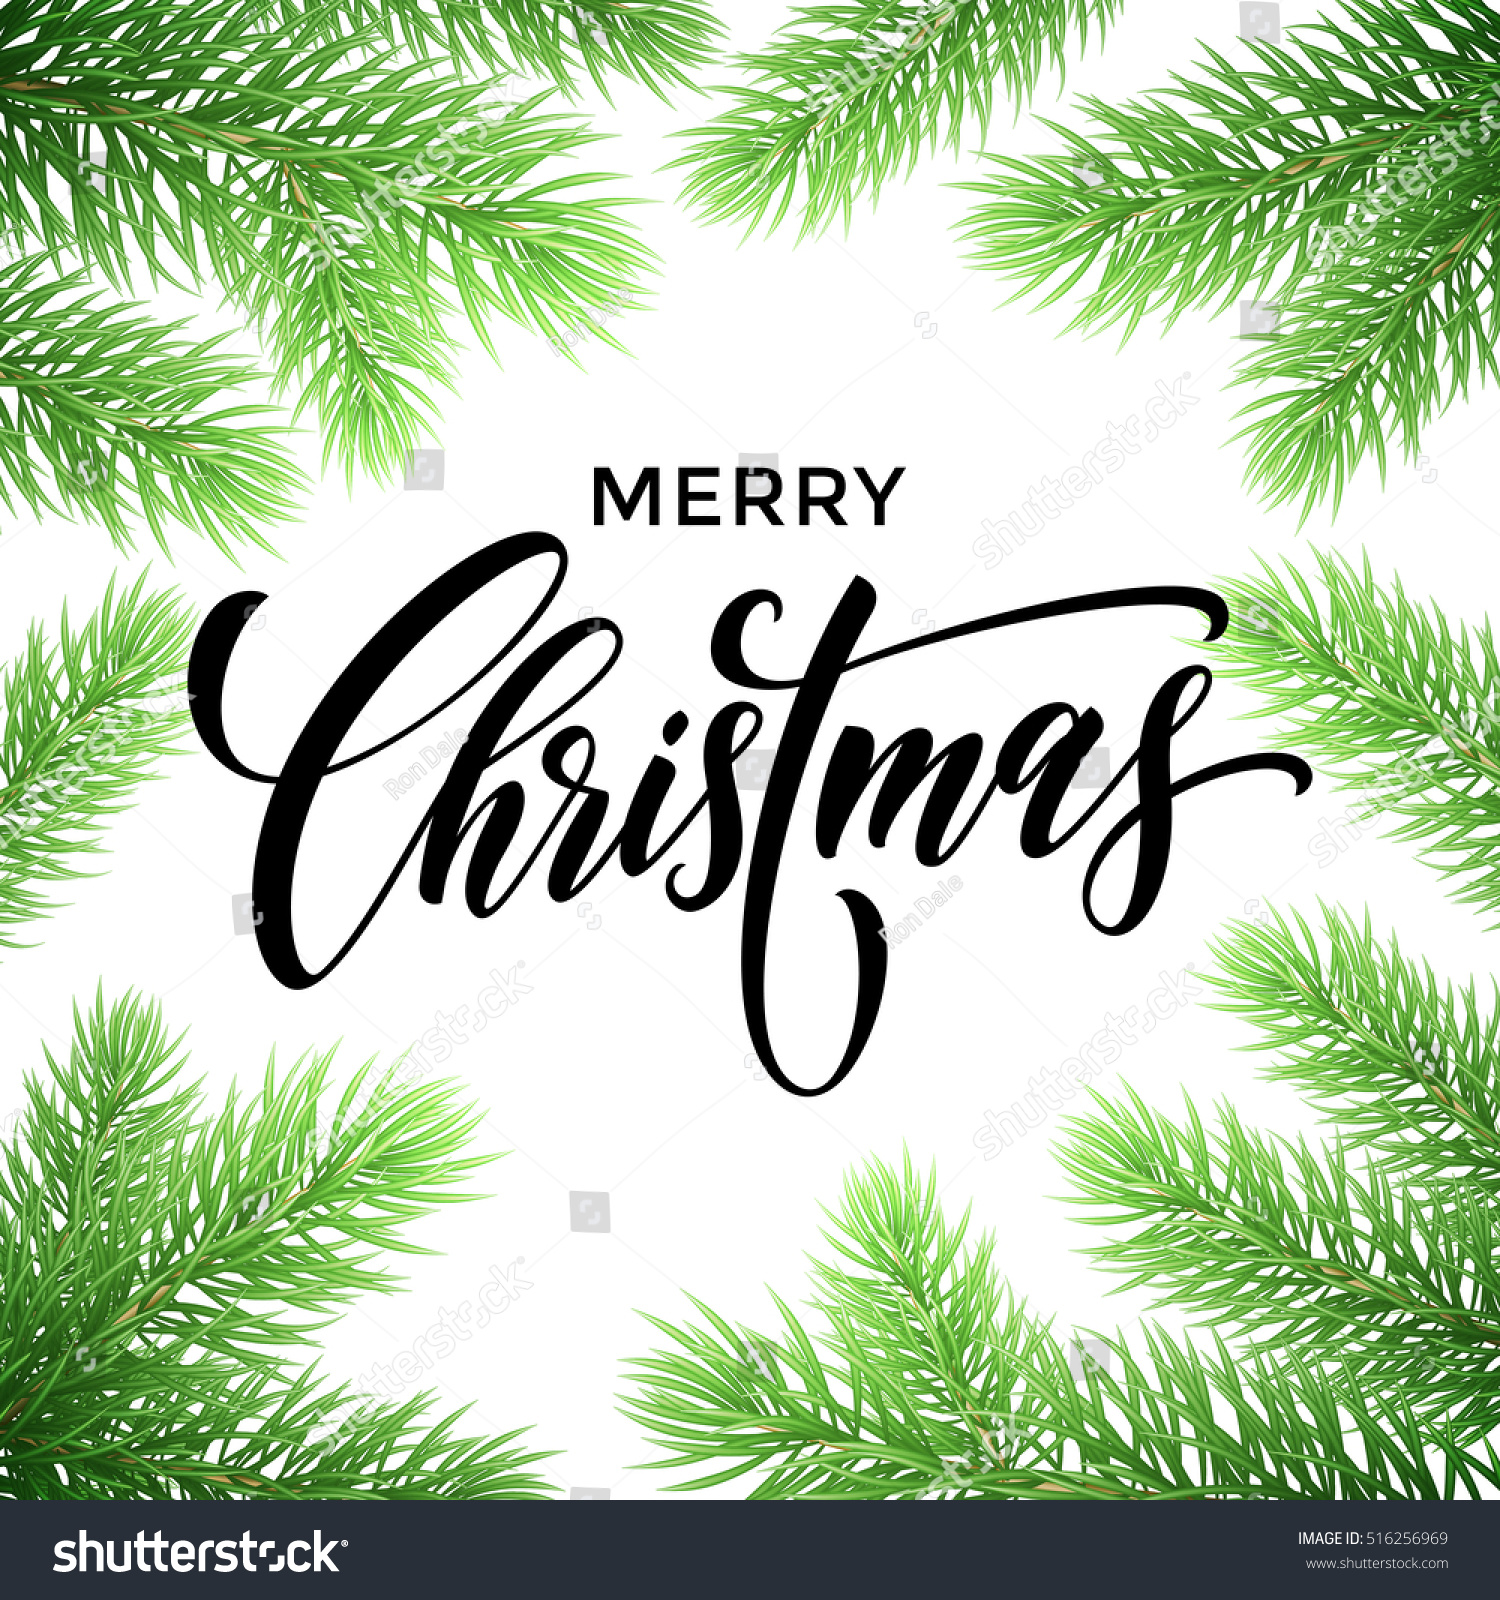 Merry Christmas Greeting Card Poster Template Stock Vector